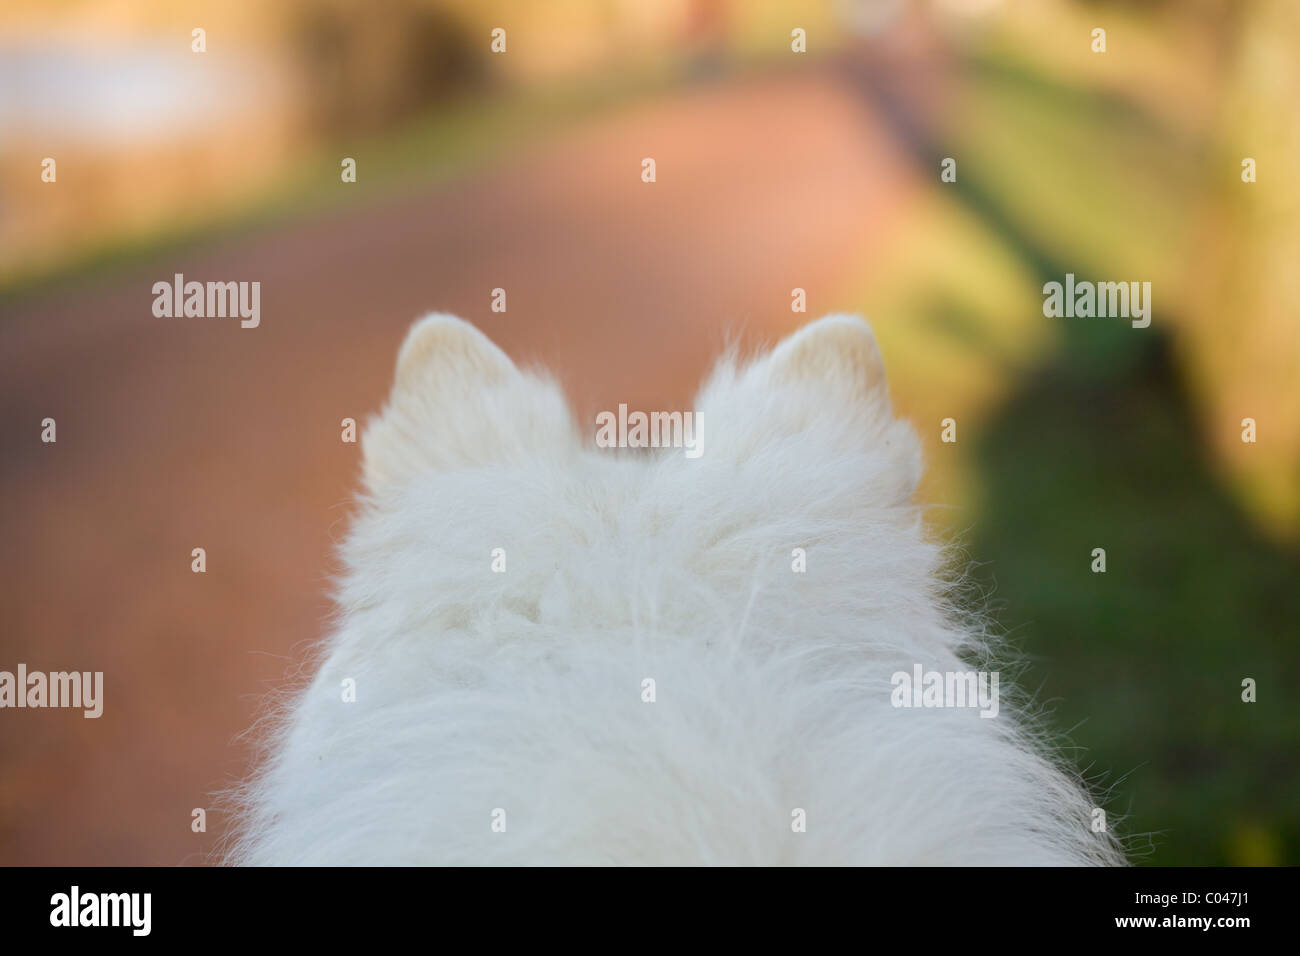 a walk in the park from a dog's viewpoint - Stock Image